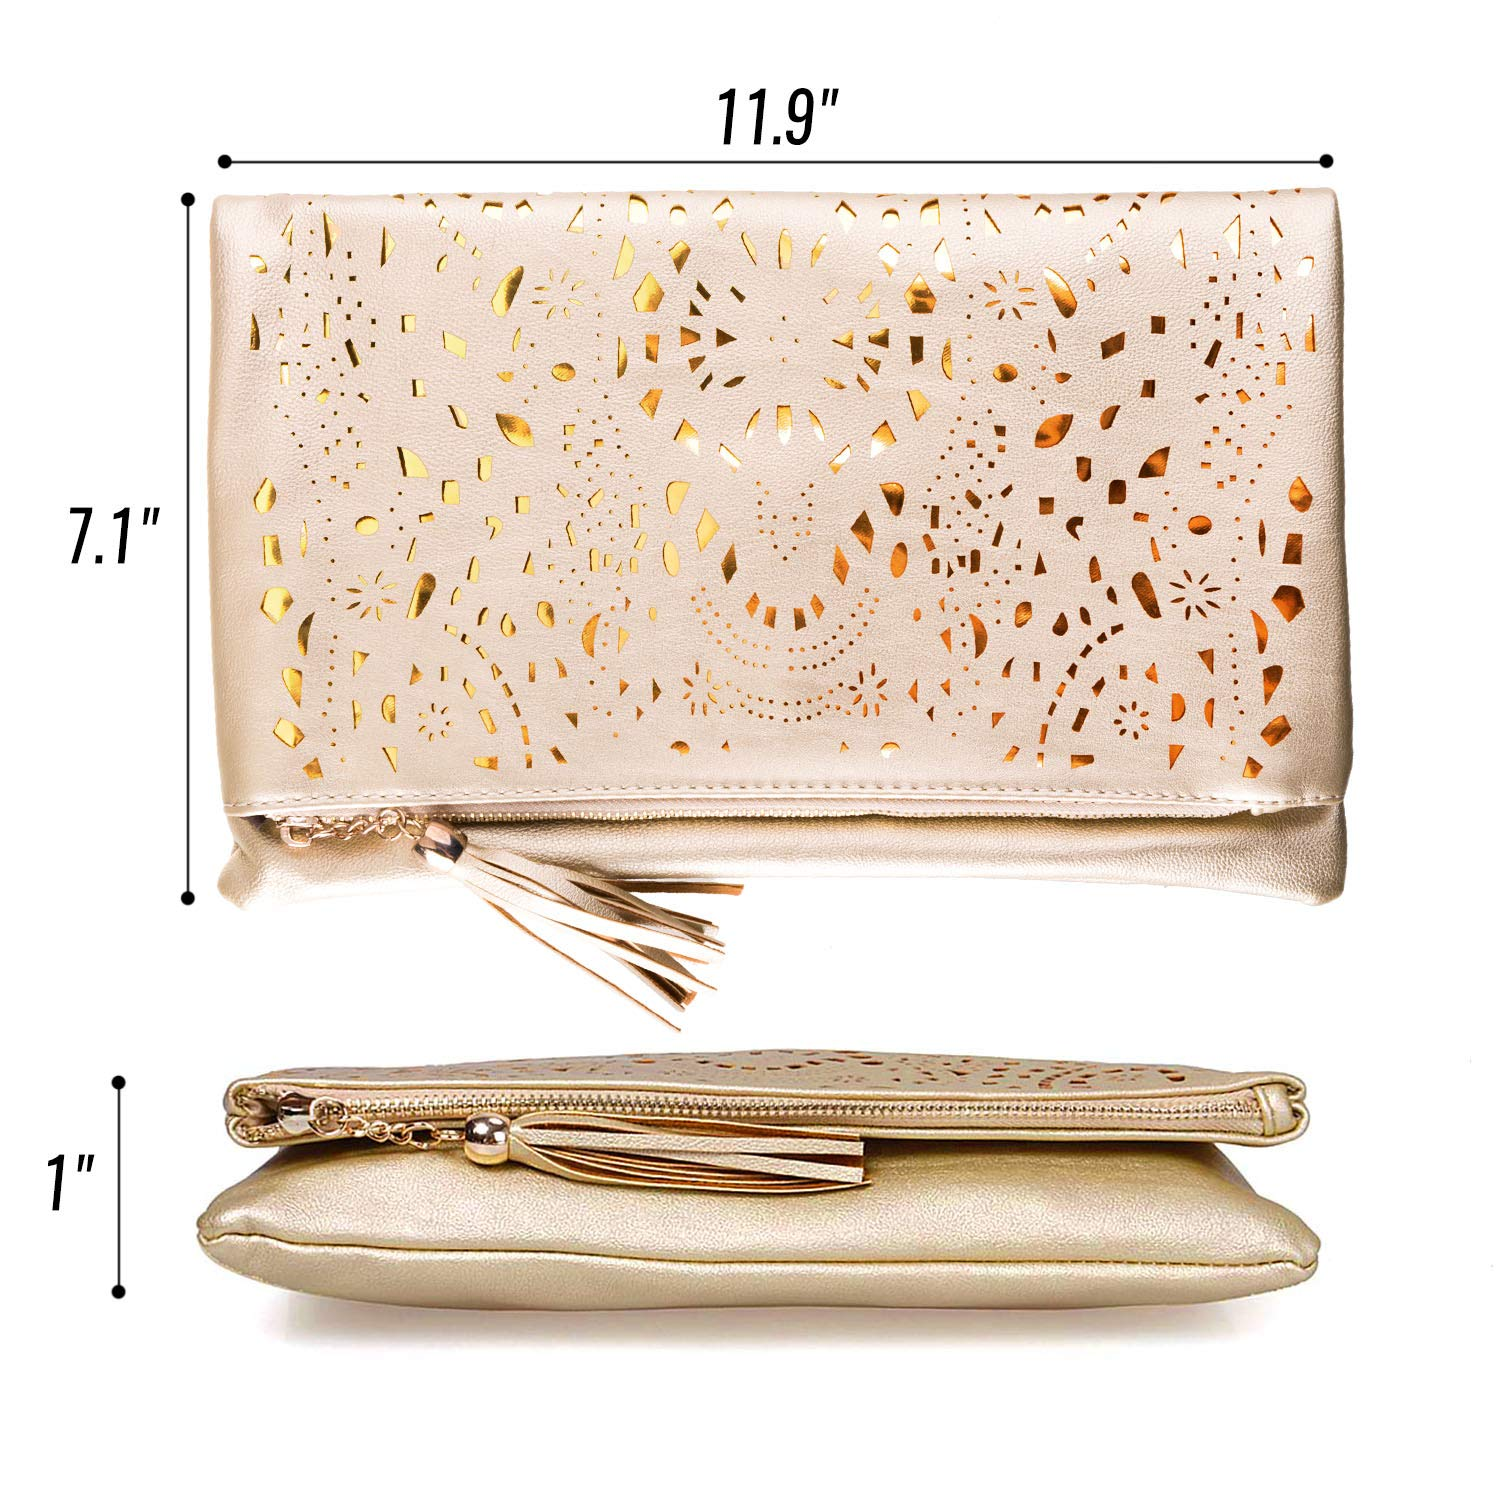 BMC Womens Glimmering Gold Perforated Cut Out Pattern Gold Accent Background Foldover Pouch Fashion Clutch Handbag by b.m.c (Image #6)